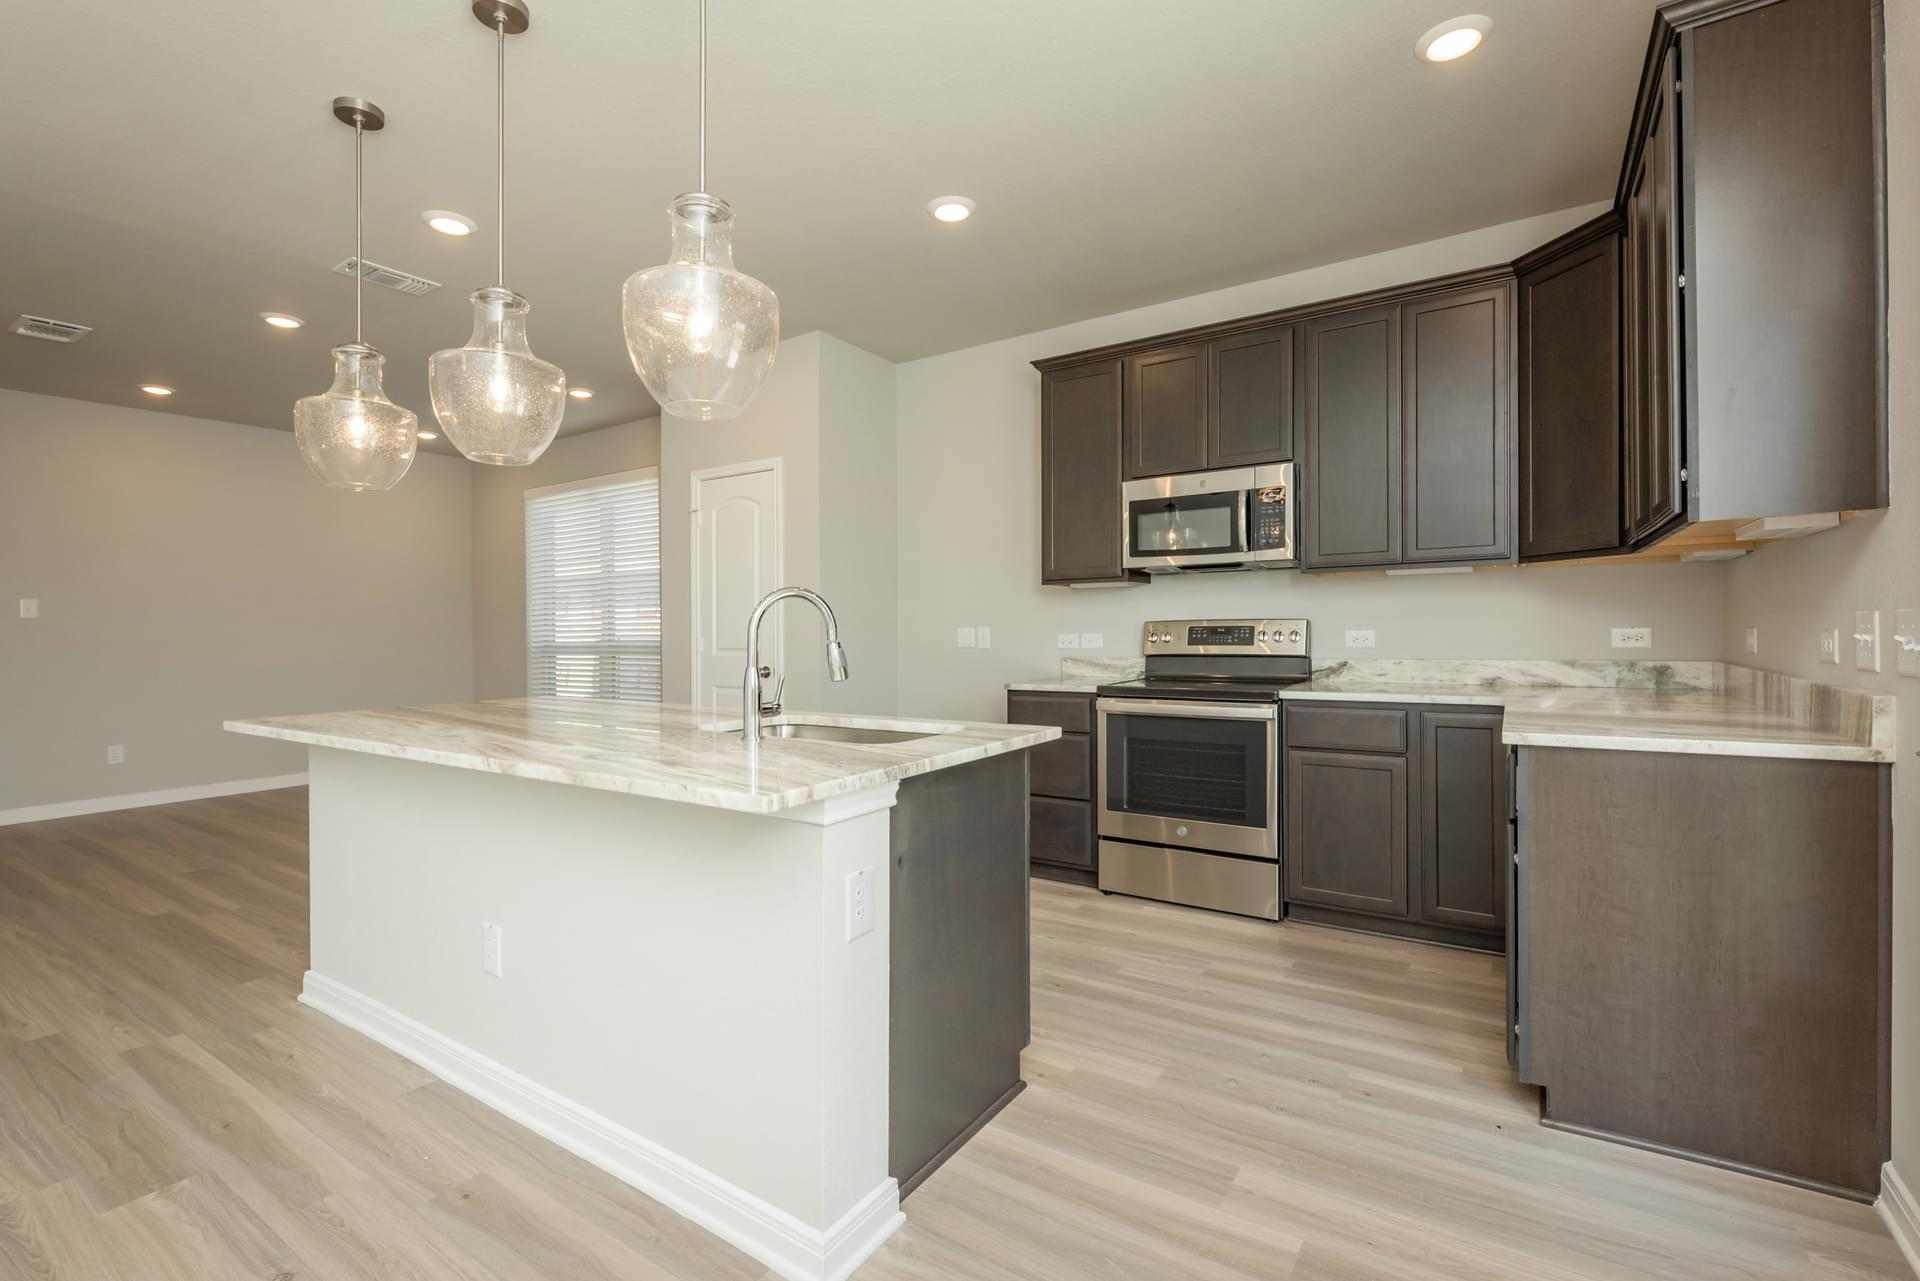 4br New Home in Willis, TX